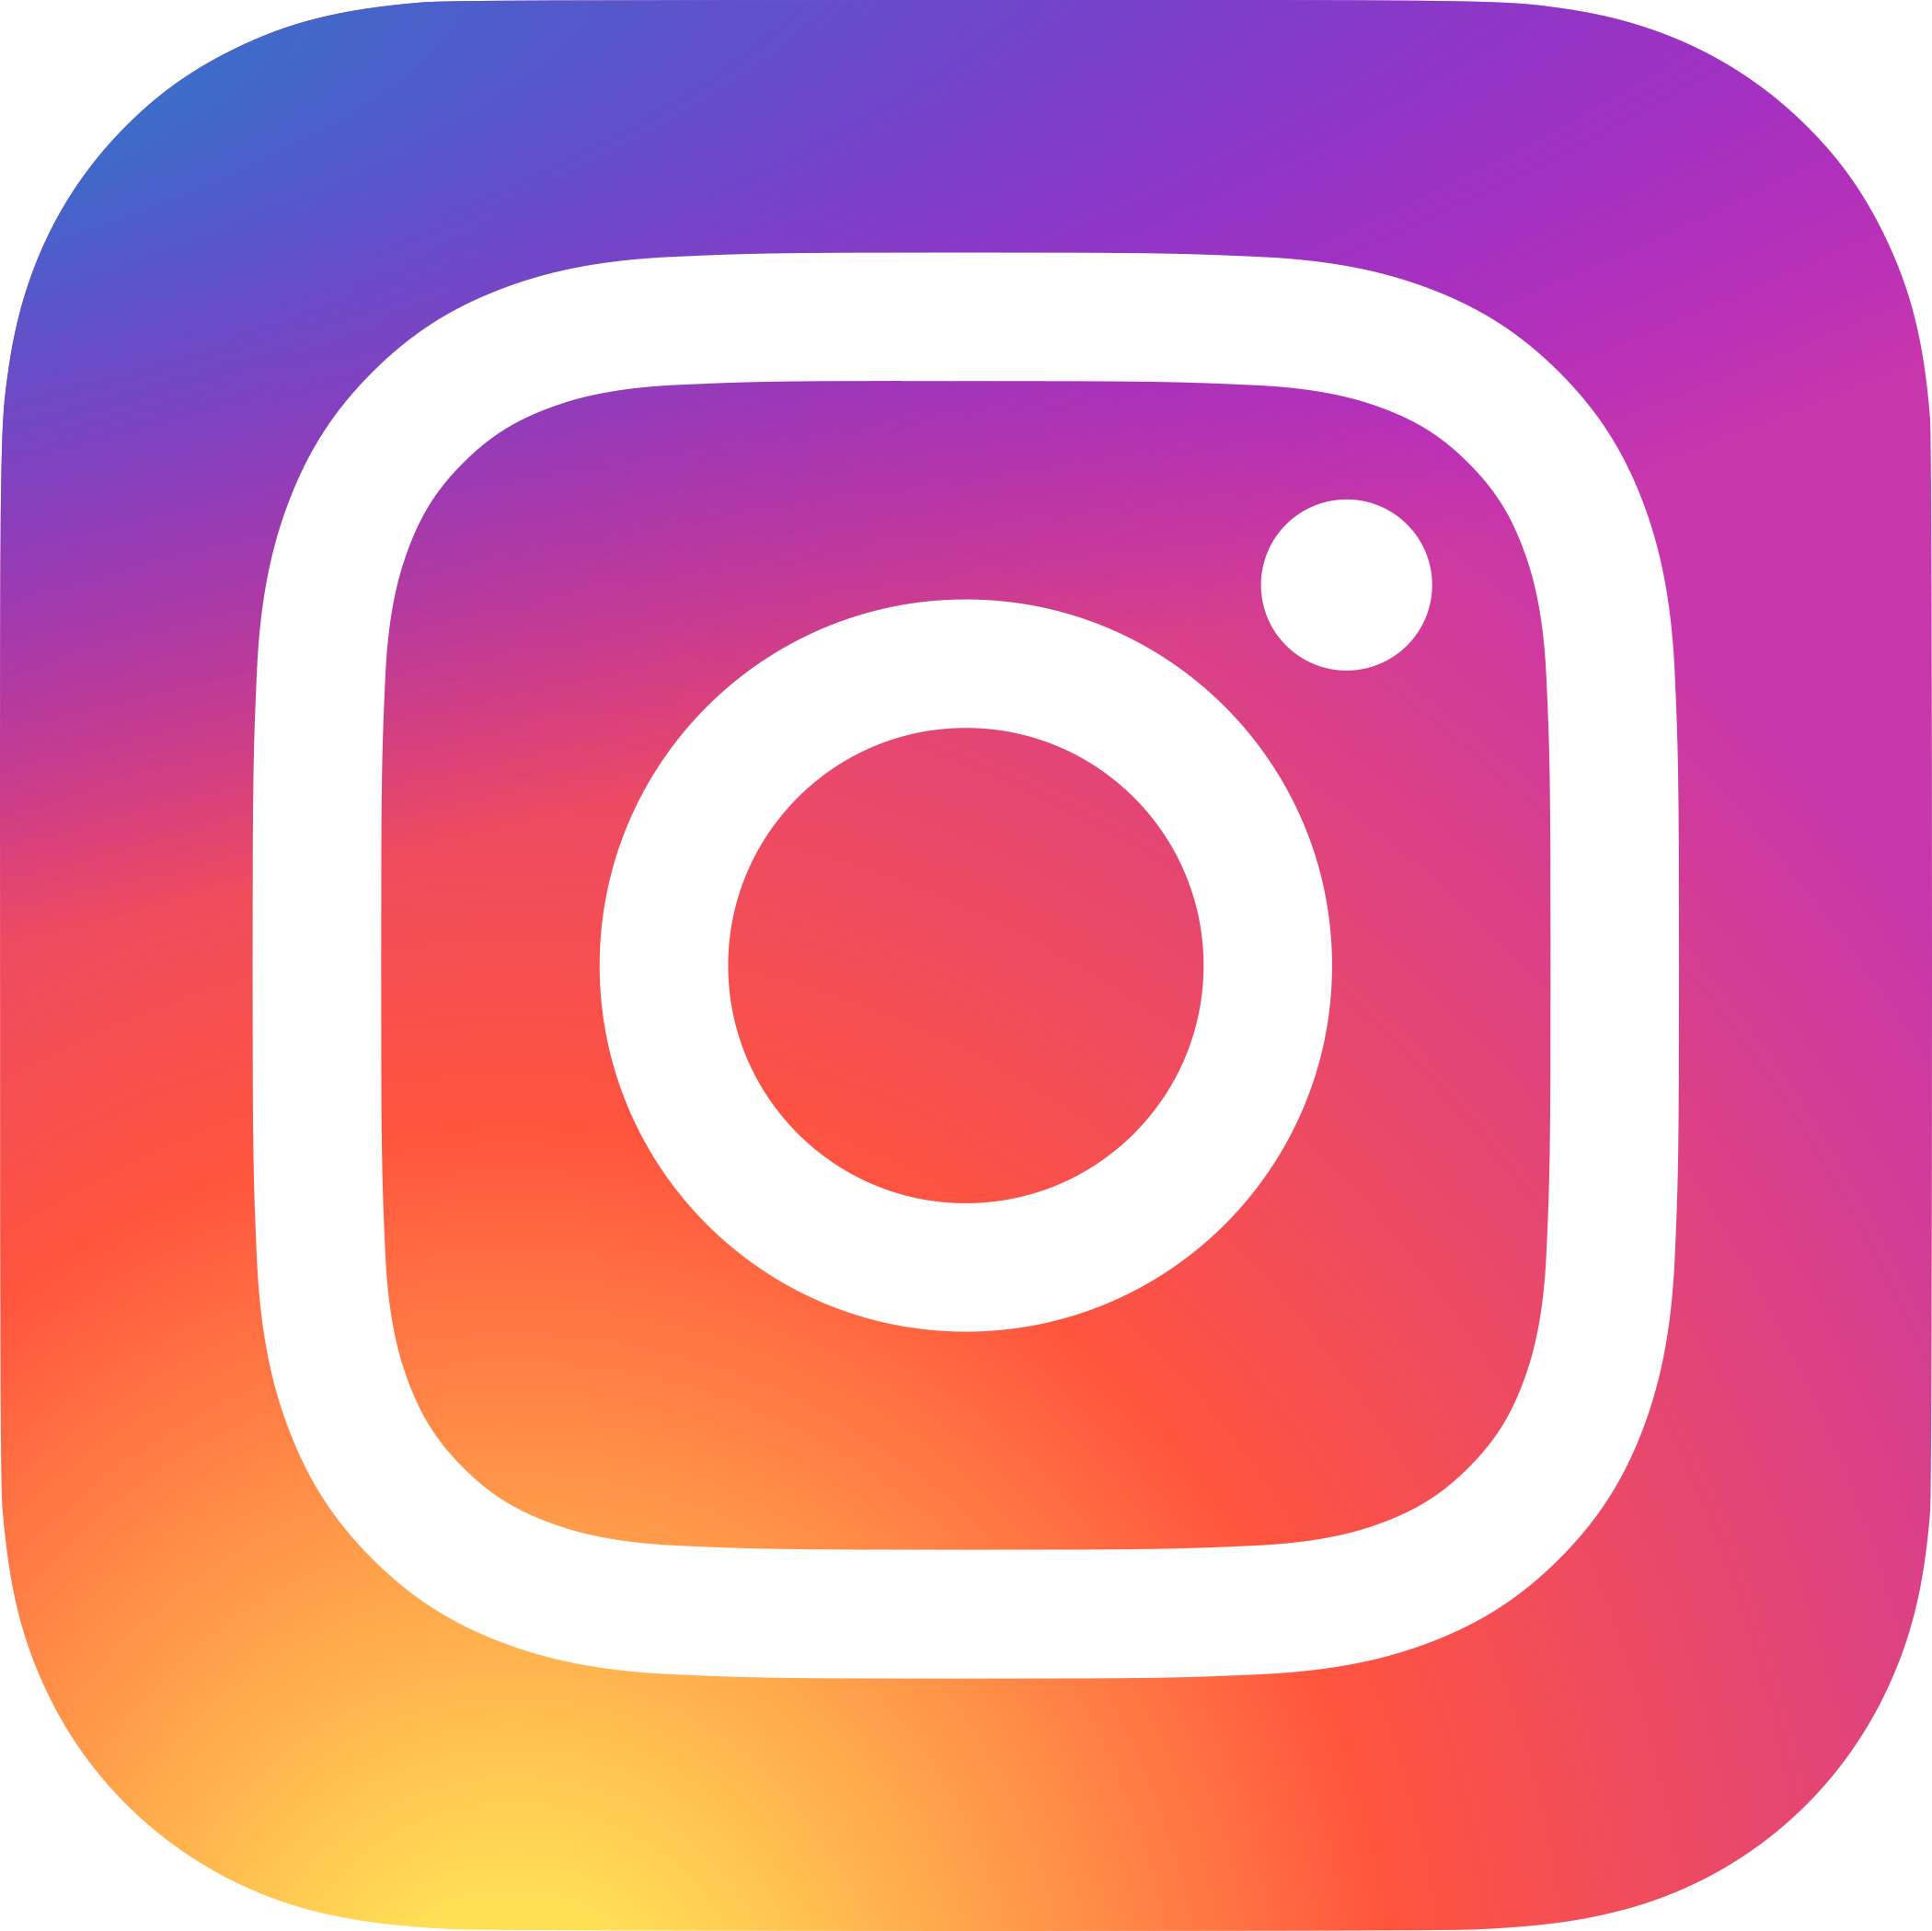 instagram-icone-icon-1 fundo transparente